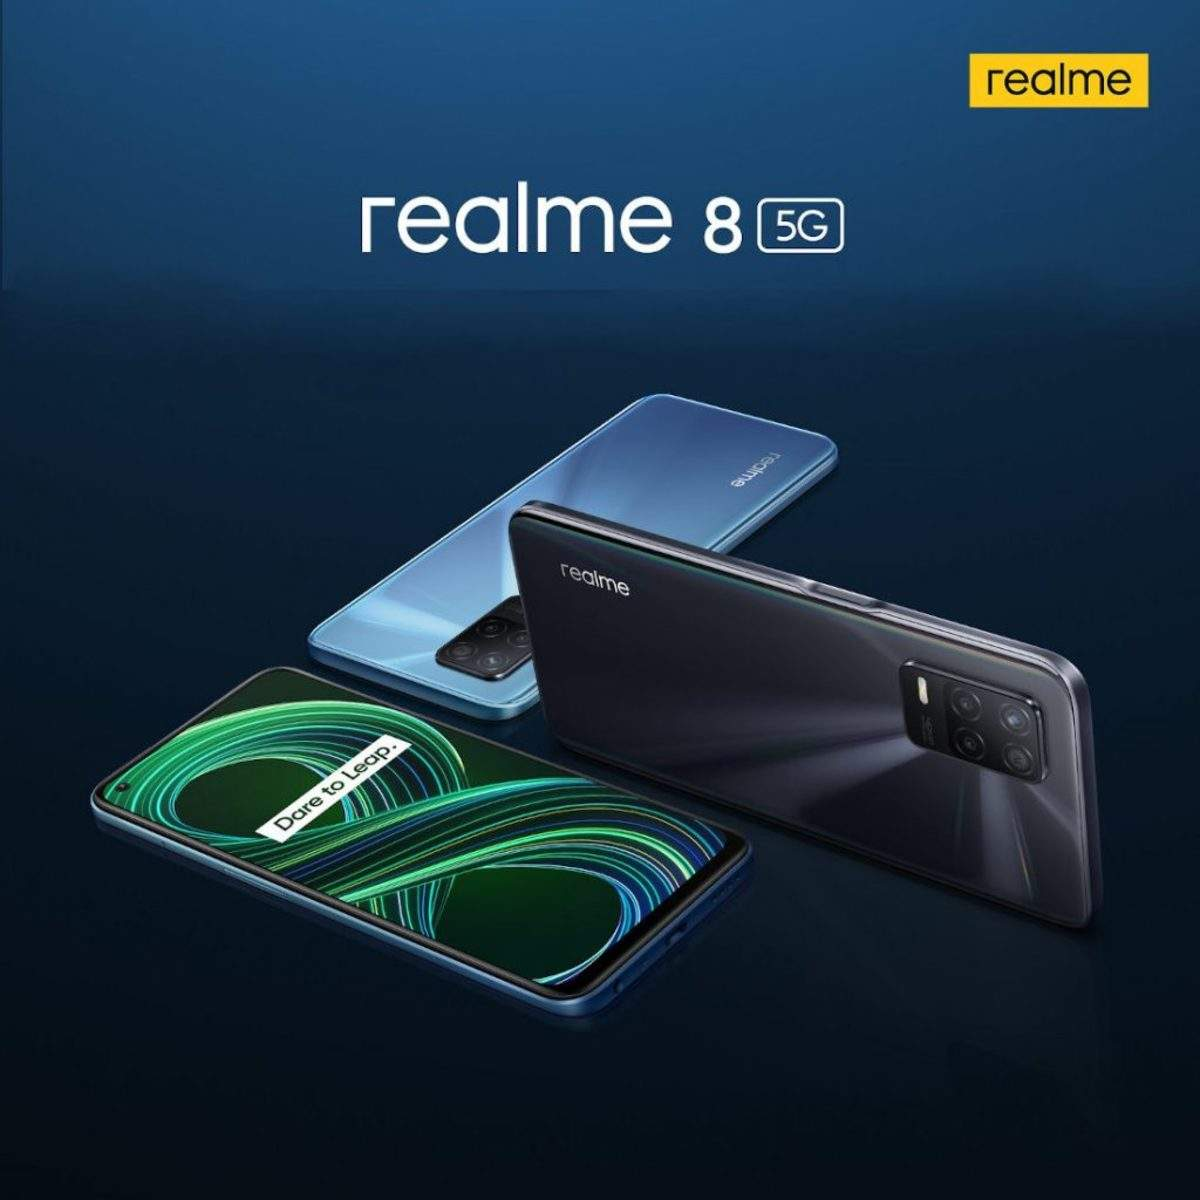 Realme 8 5G, Realme 8 Pro 5G may launch in India soon